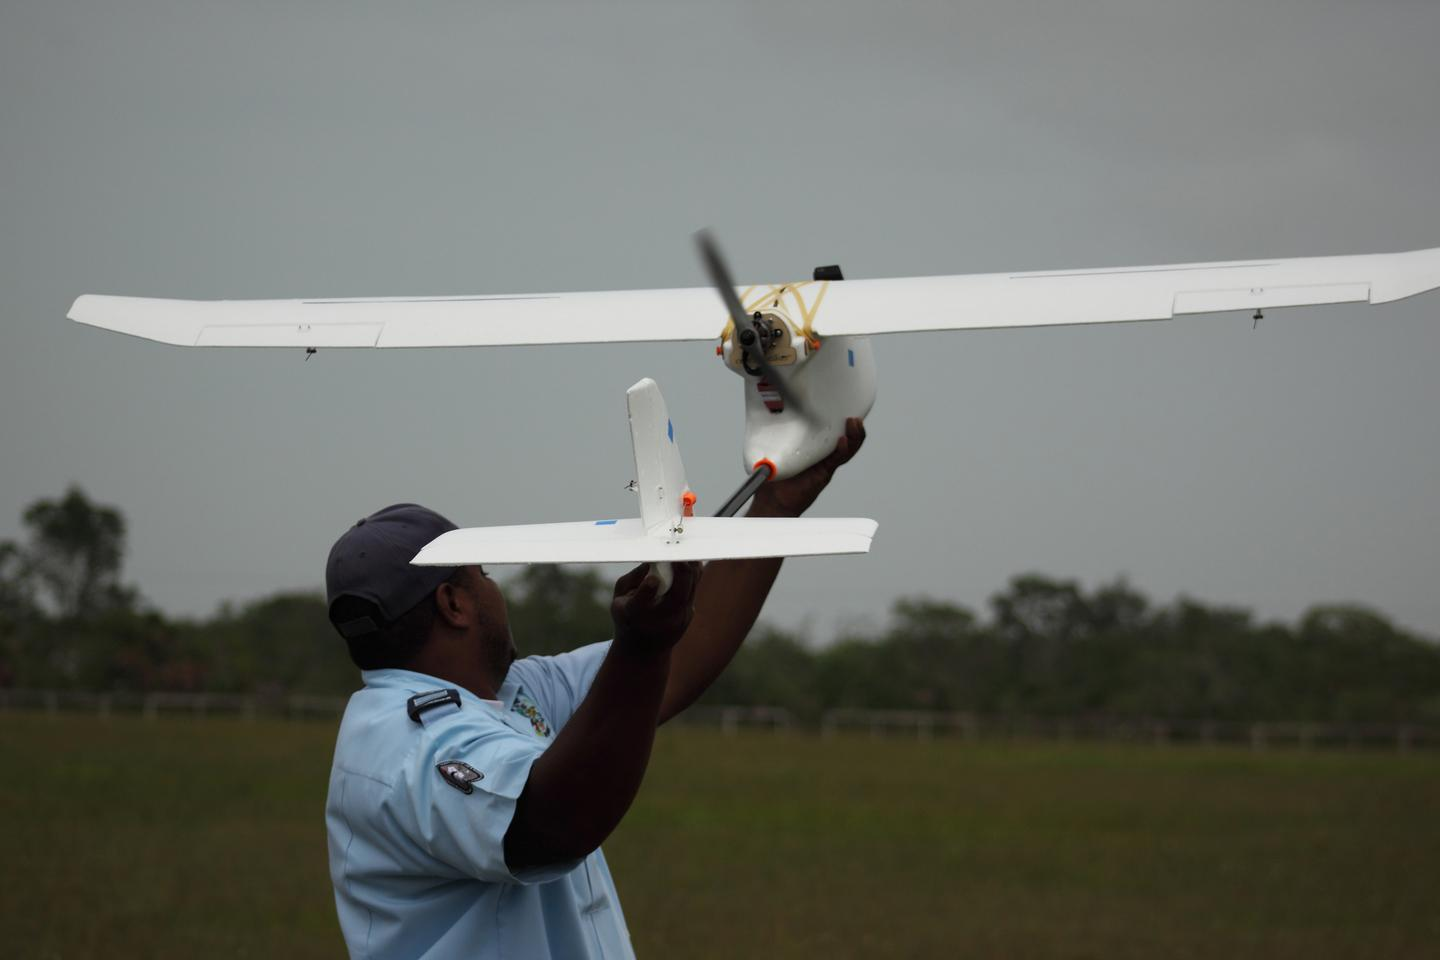 Capable of capturing high-resolution photo and video, the aircraft will enable government officials to monitor areas along the coastline that are often obscured by mangrove forests